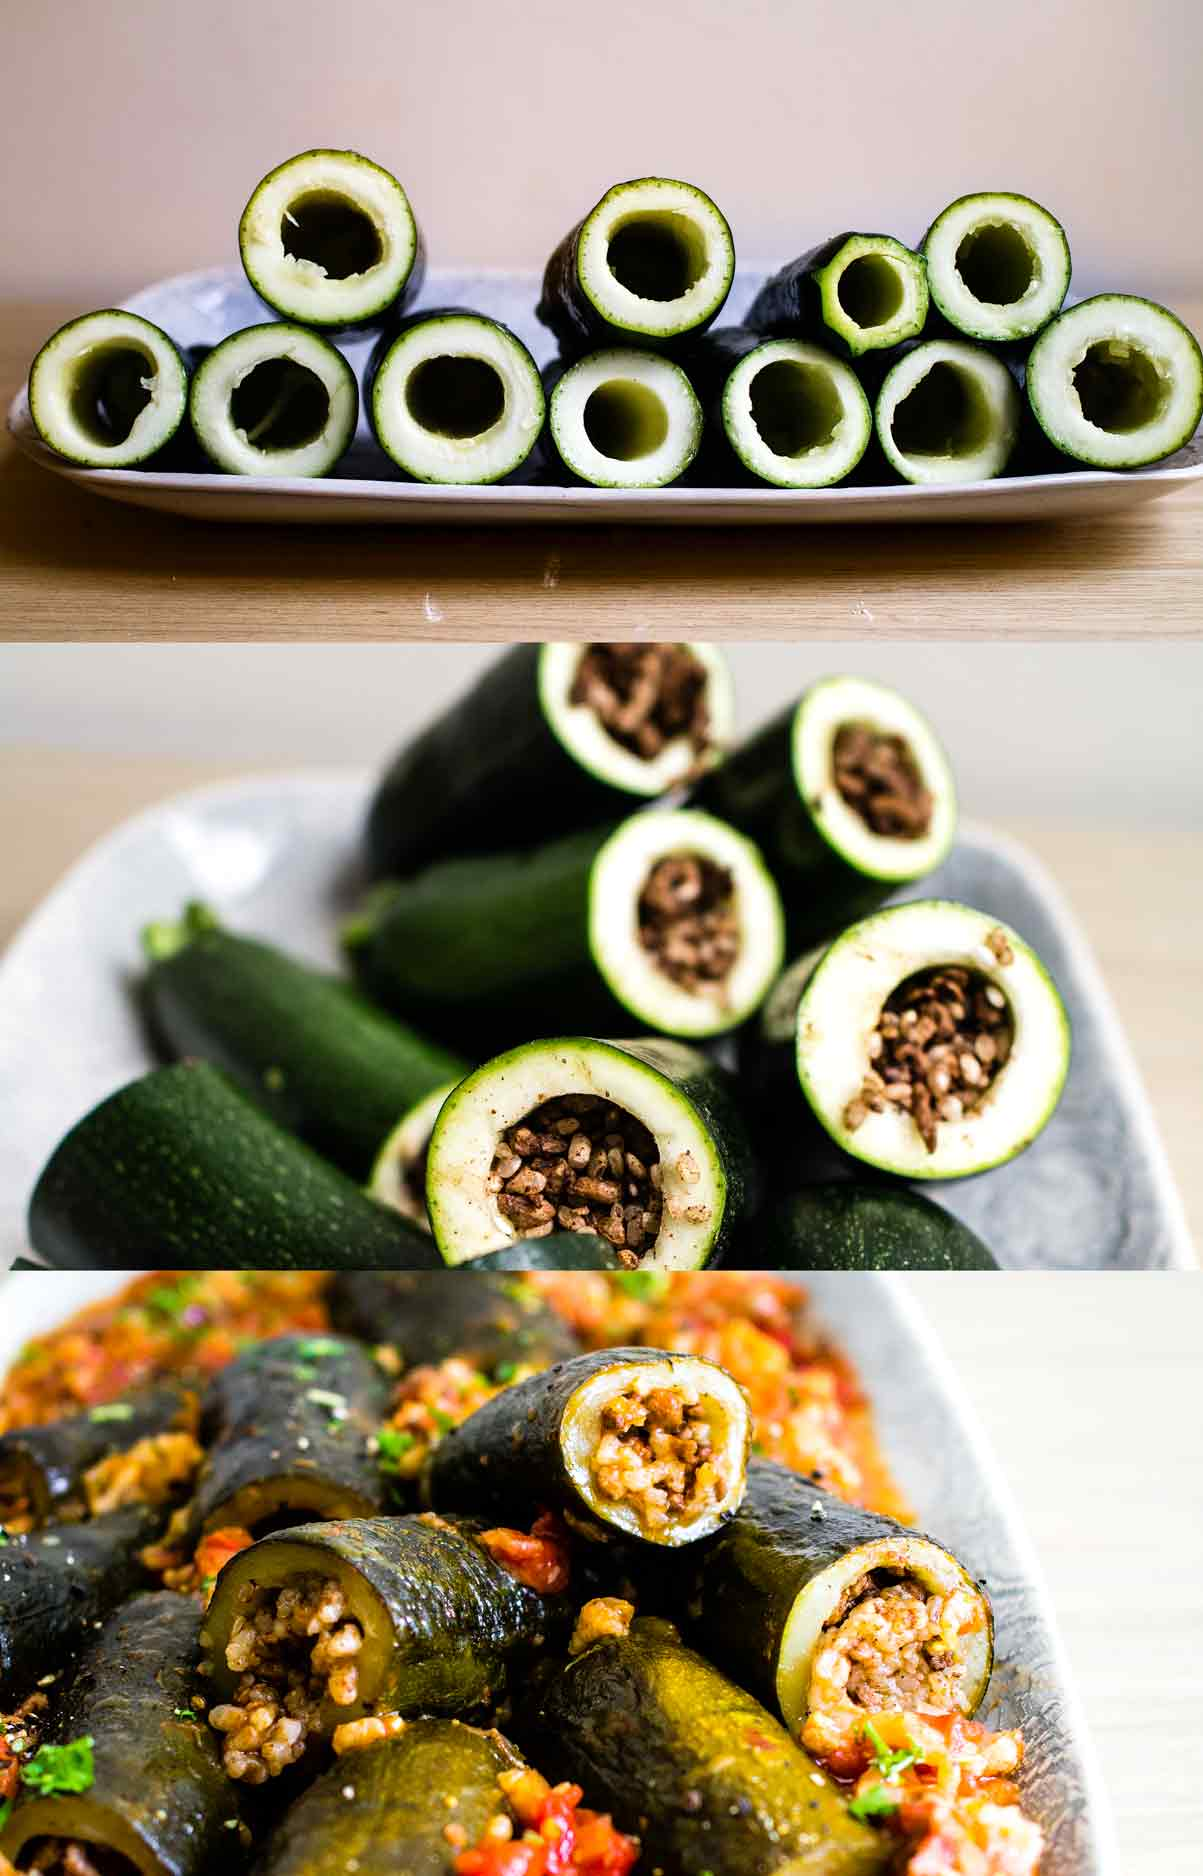 Stuffed Courgettes (zucchini)  Israeli Stuffed Tomatoes and Courgettes   Vegan Recipe   Discover Delicious   www.discoverdelicious.org